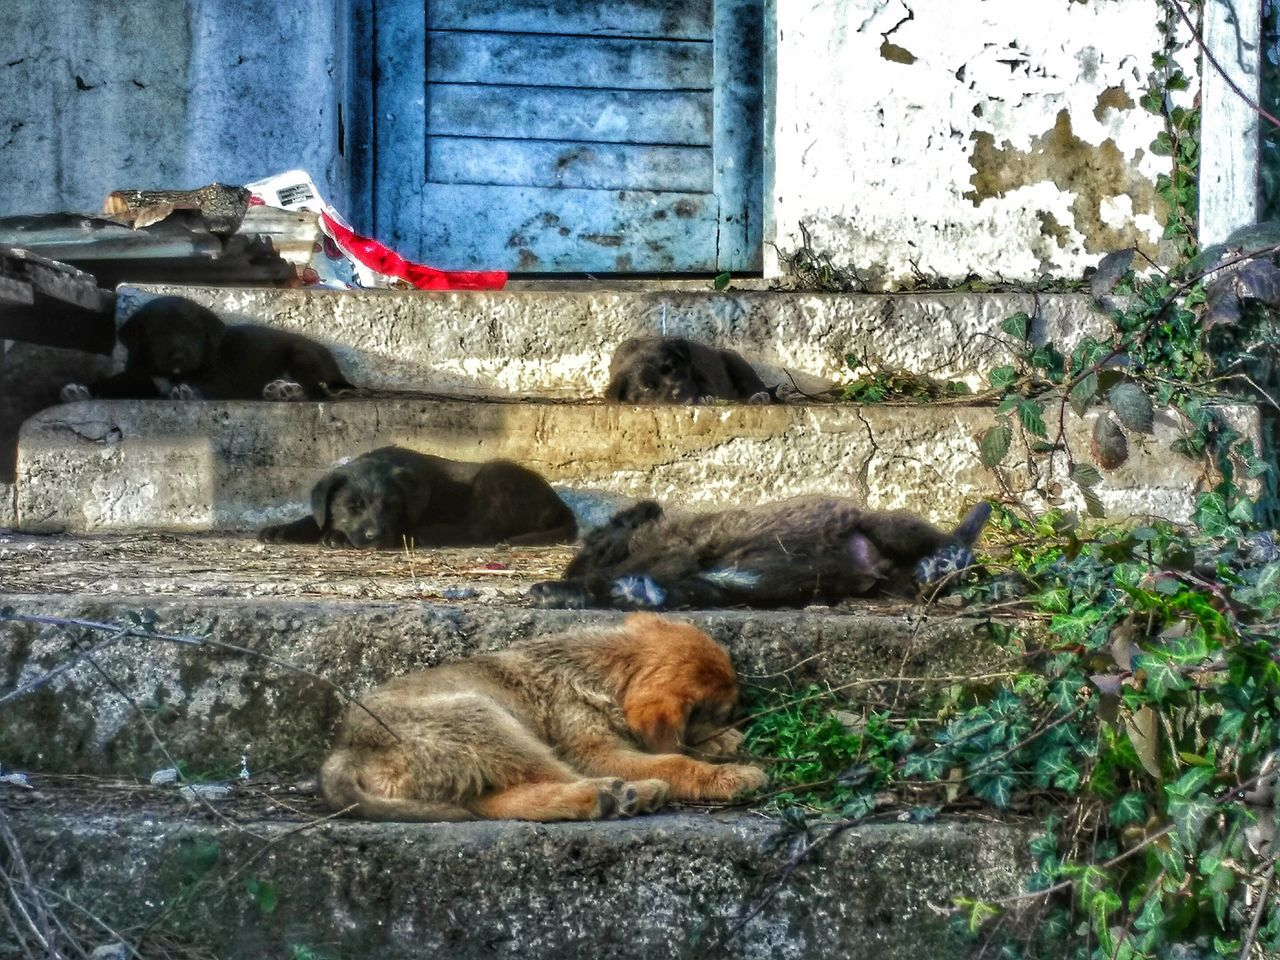 Dog Dogs Old Ruin Photography Photooftheday Photo Old House Nature Photography Photographer Nature Oldpicture Popular Photos Capture The Moment ı Love My City